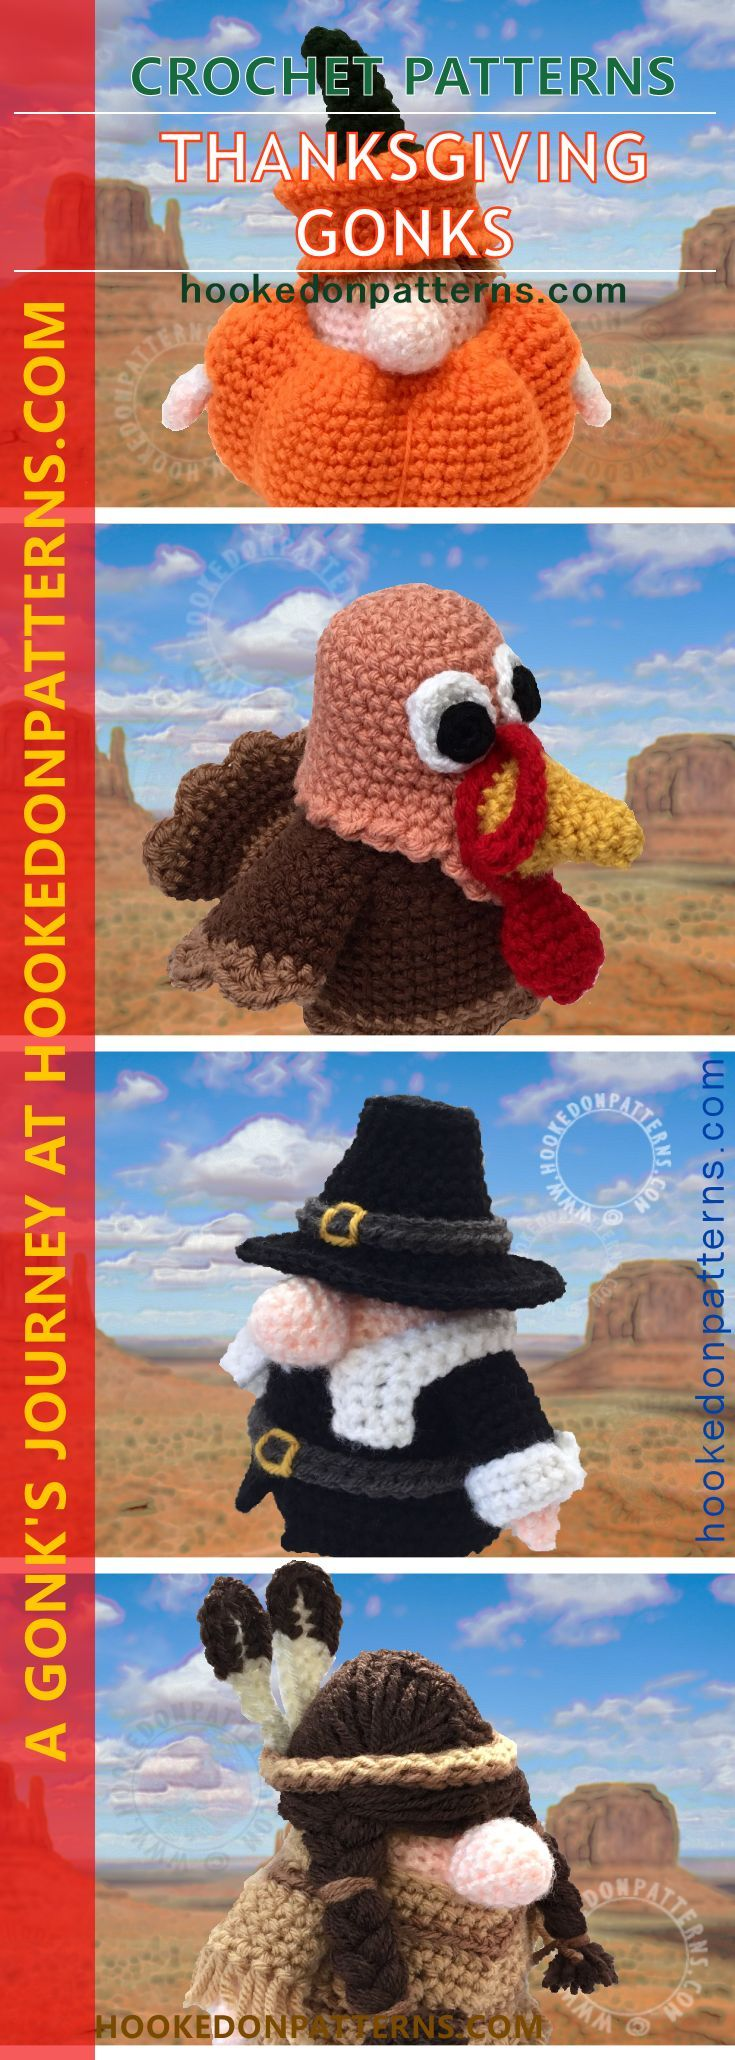 179 best crochetknitting for fall images on pinterest knit thanksgiving crochet gonk outfits bankloansurffo Choice Image